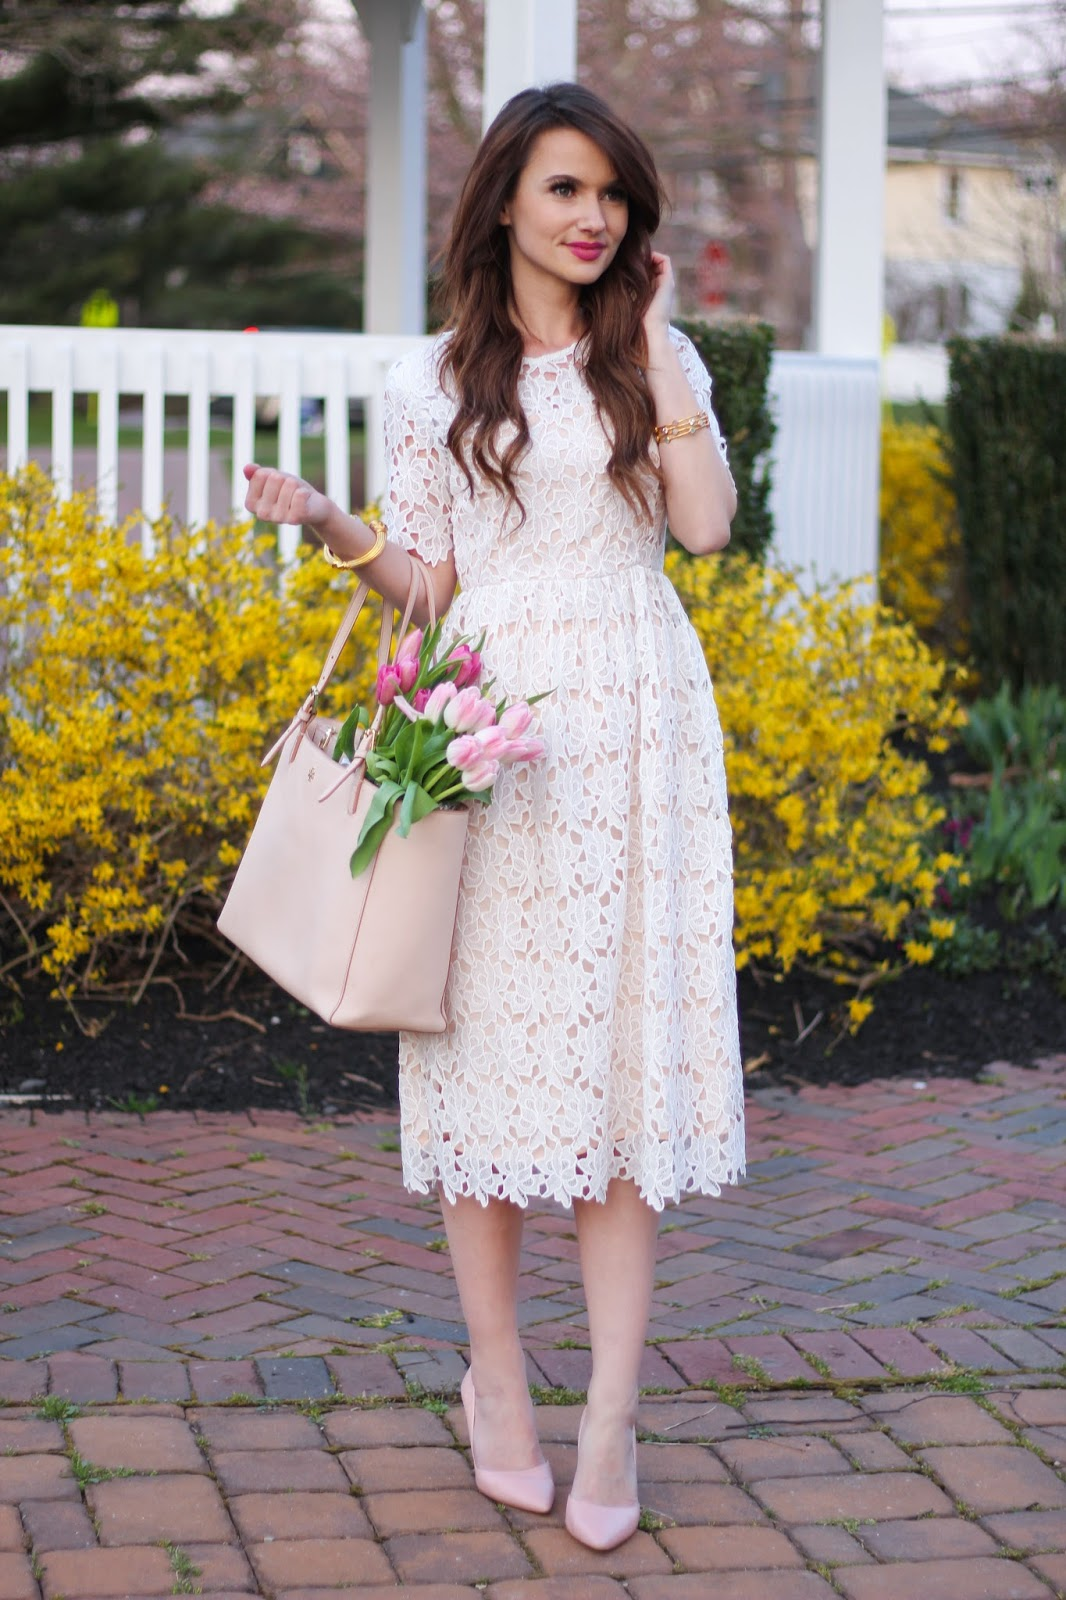 A White Lace Dress For Easter Kiss Me Darling